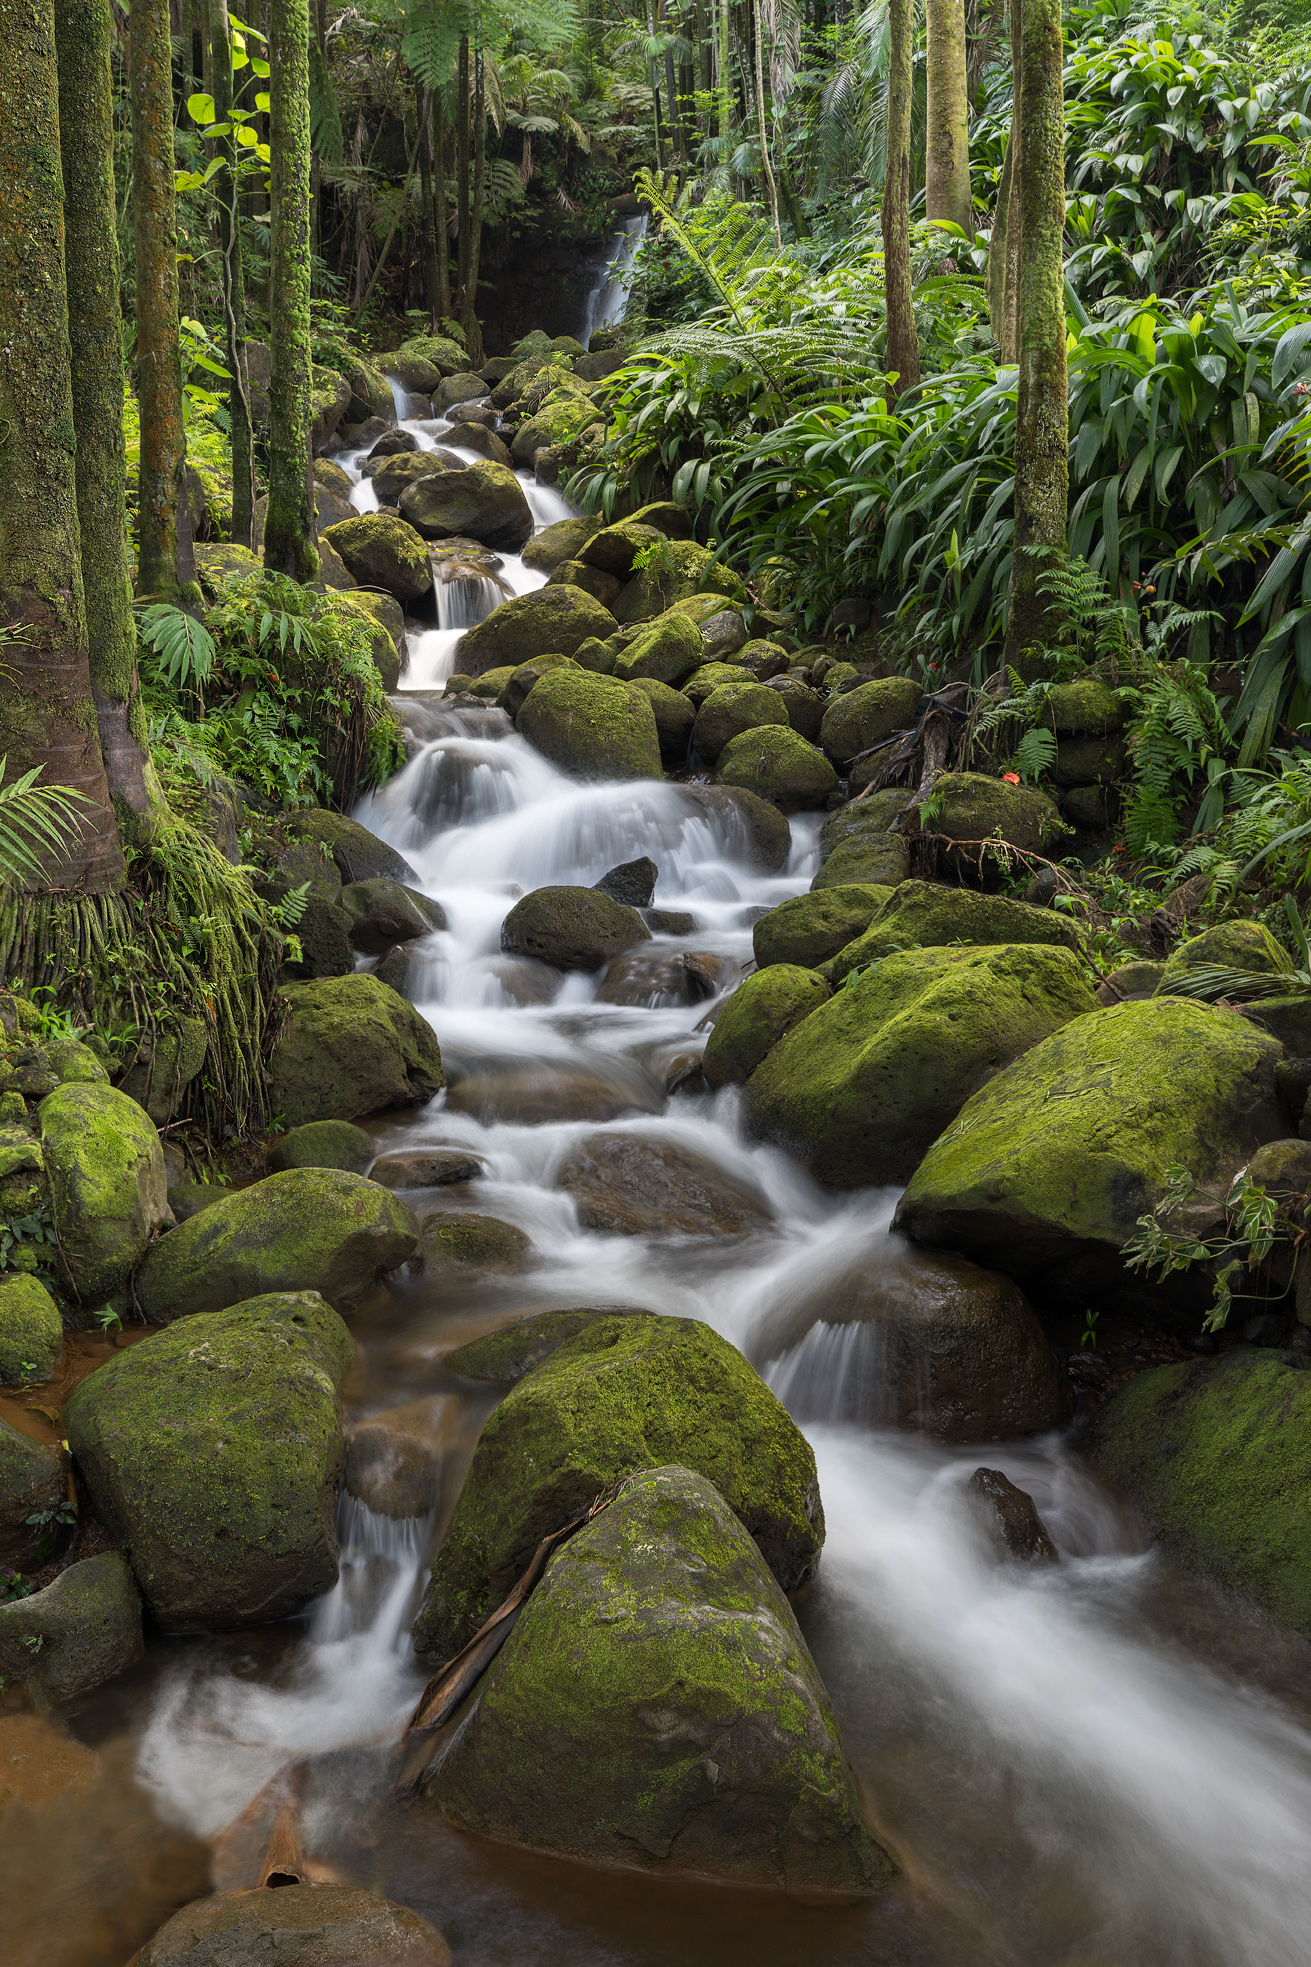 In this photo, a beautiful stream makes its way through a palm tree forest. The lush greenery and moss-covered rocks make this...